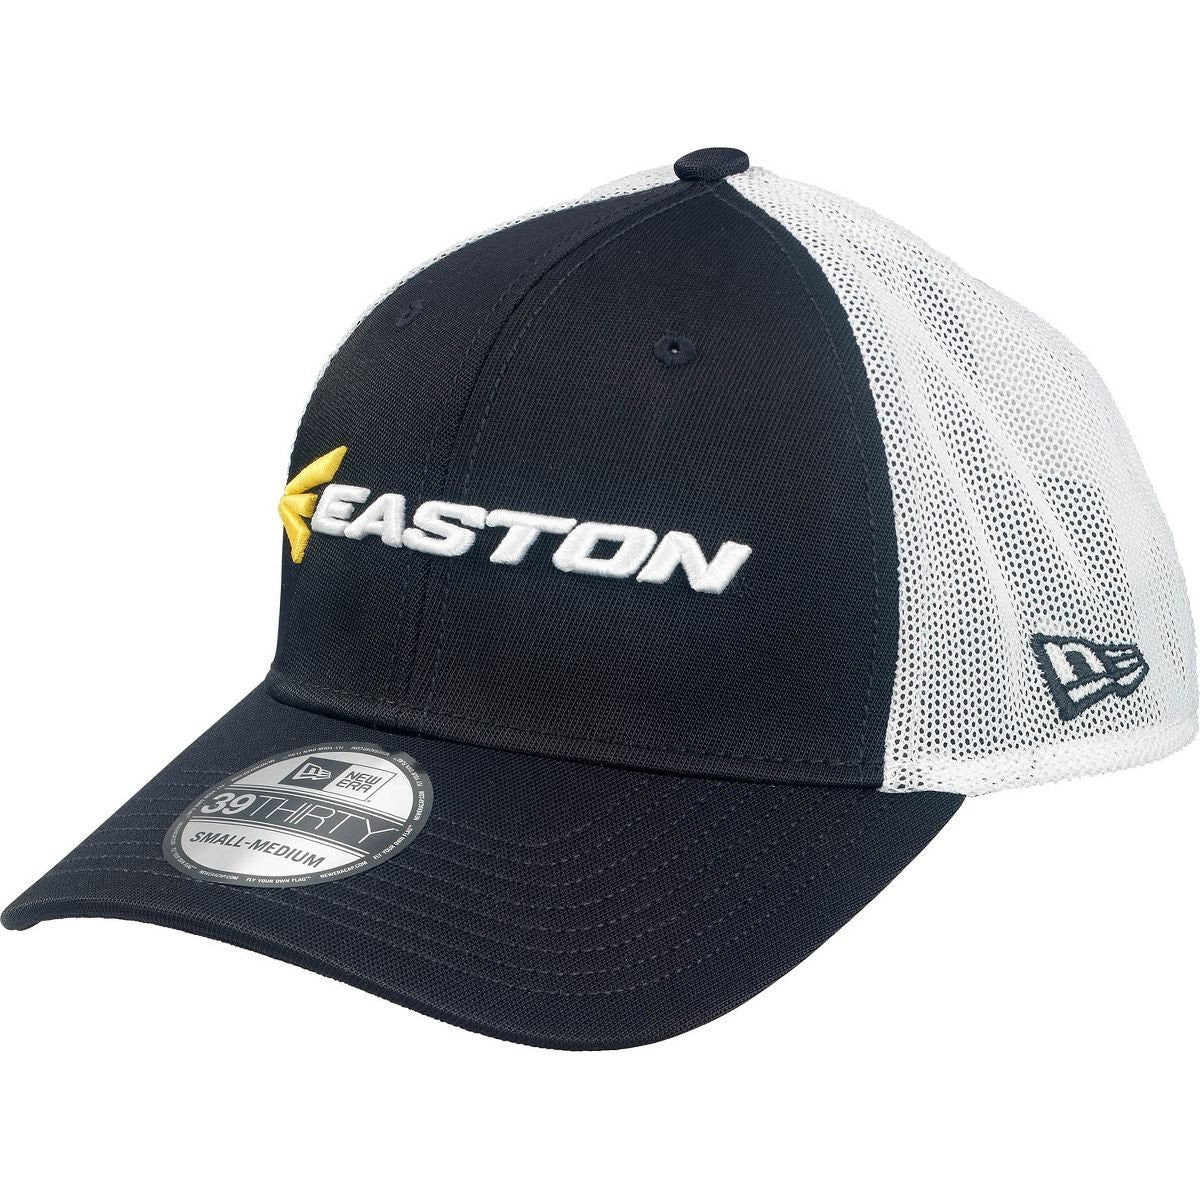 Easton M7 LINEAR LOGO New Era 39THIRTY Hat – Texas Bat Company 5366e3eae